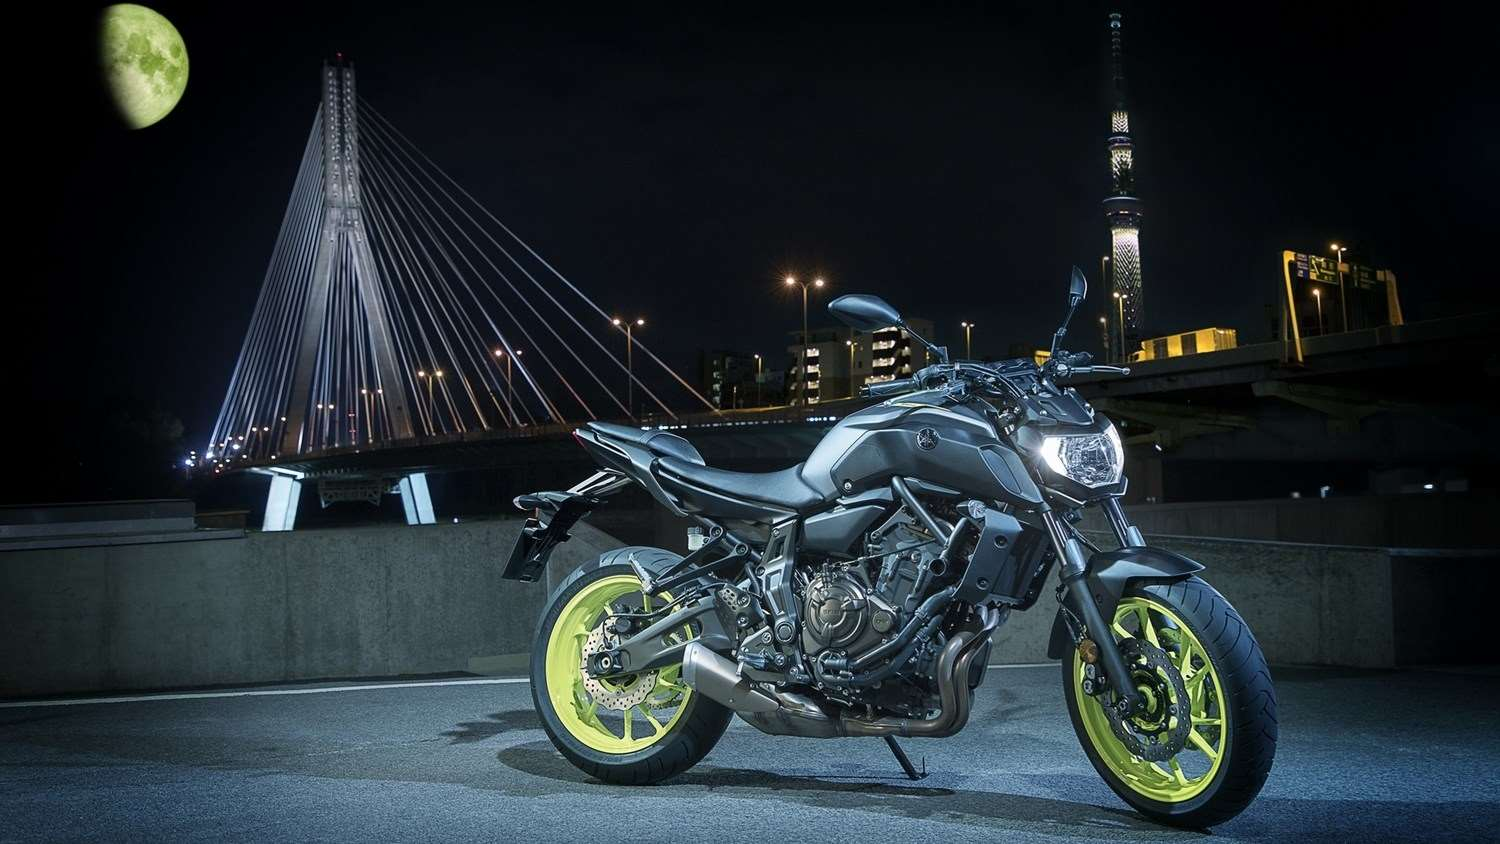 2018-yamaha-mt-07-eu-night-fluo-static-003_13034